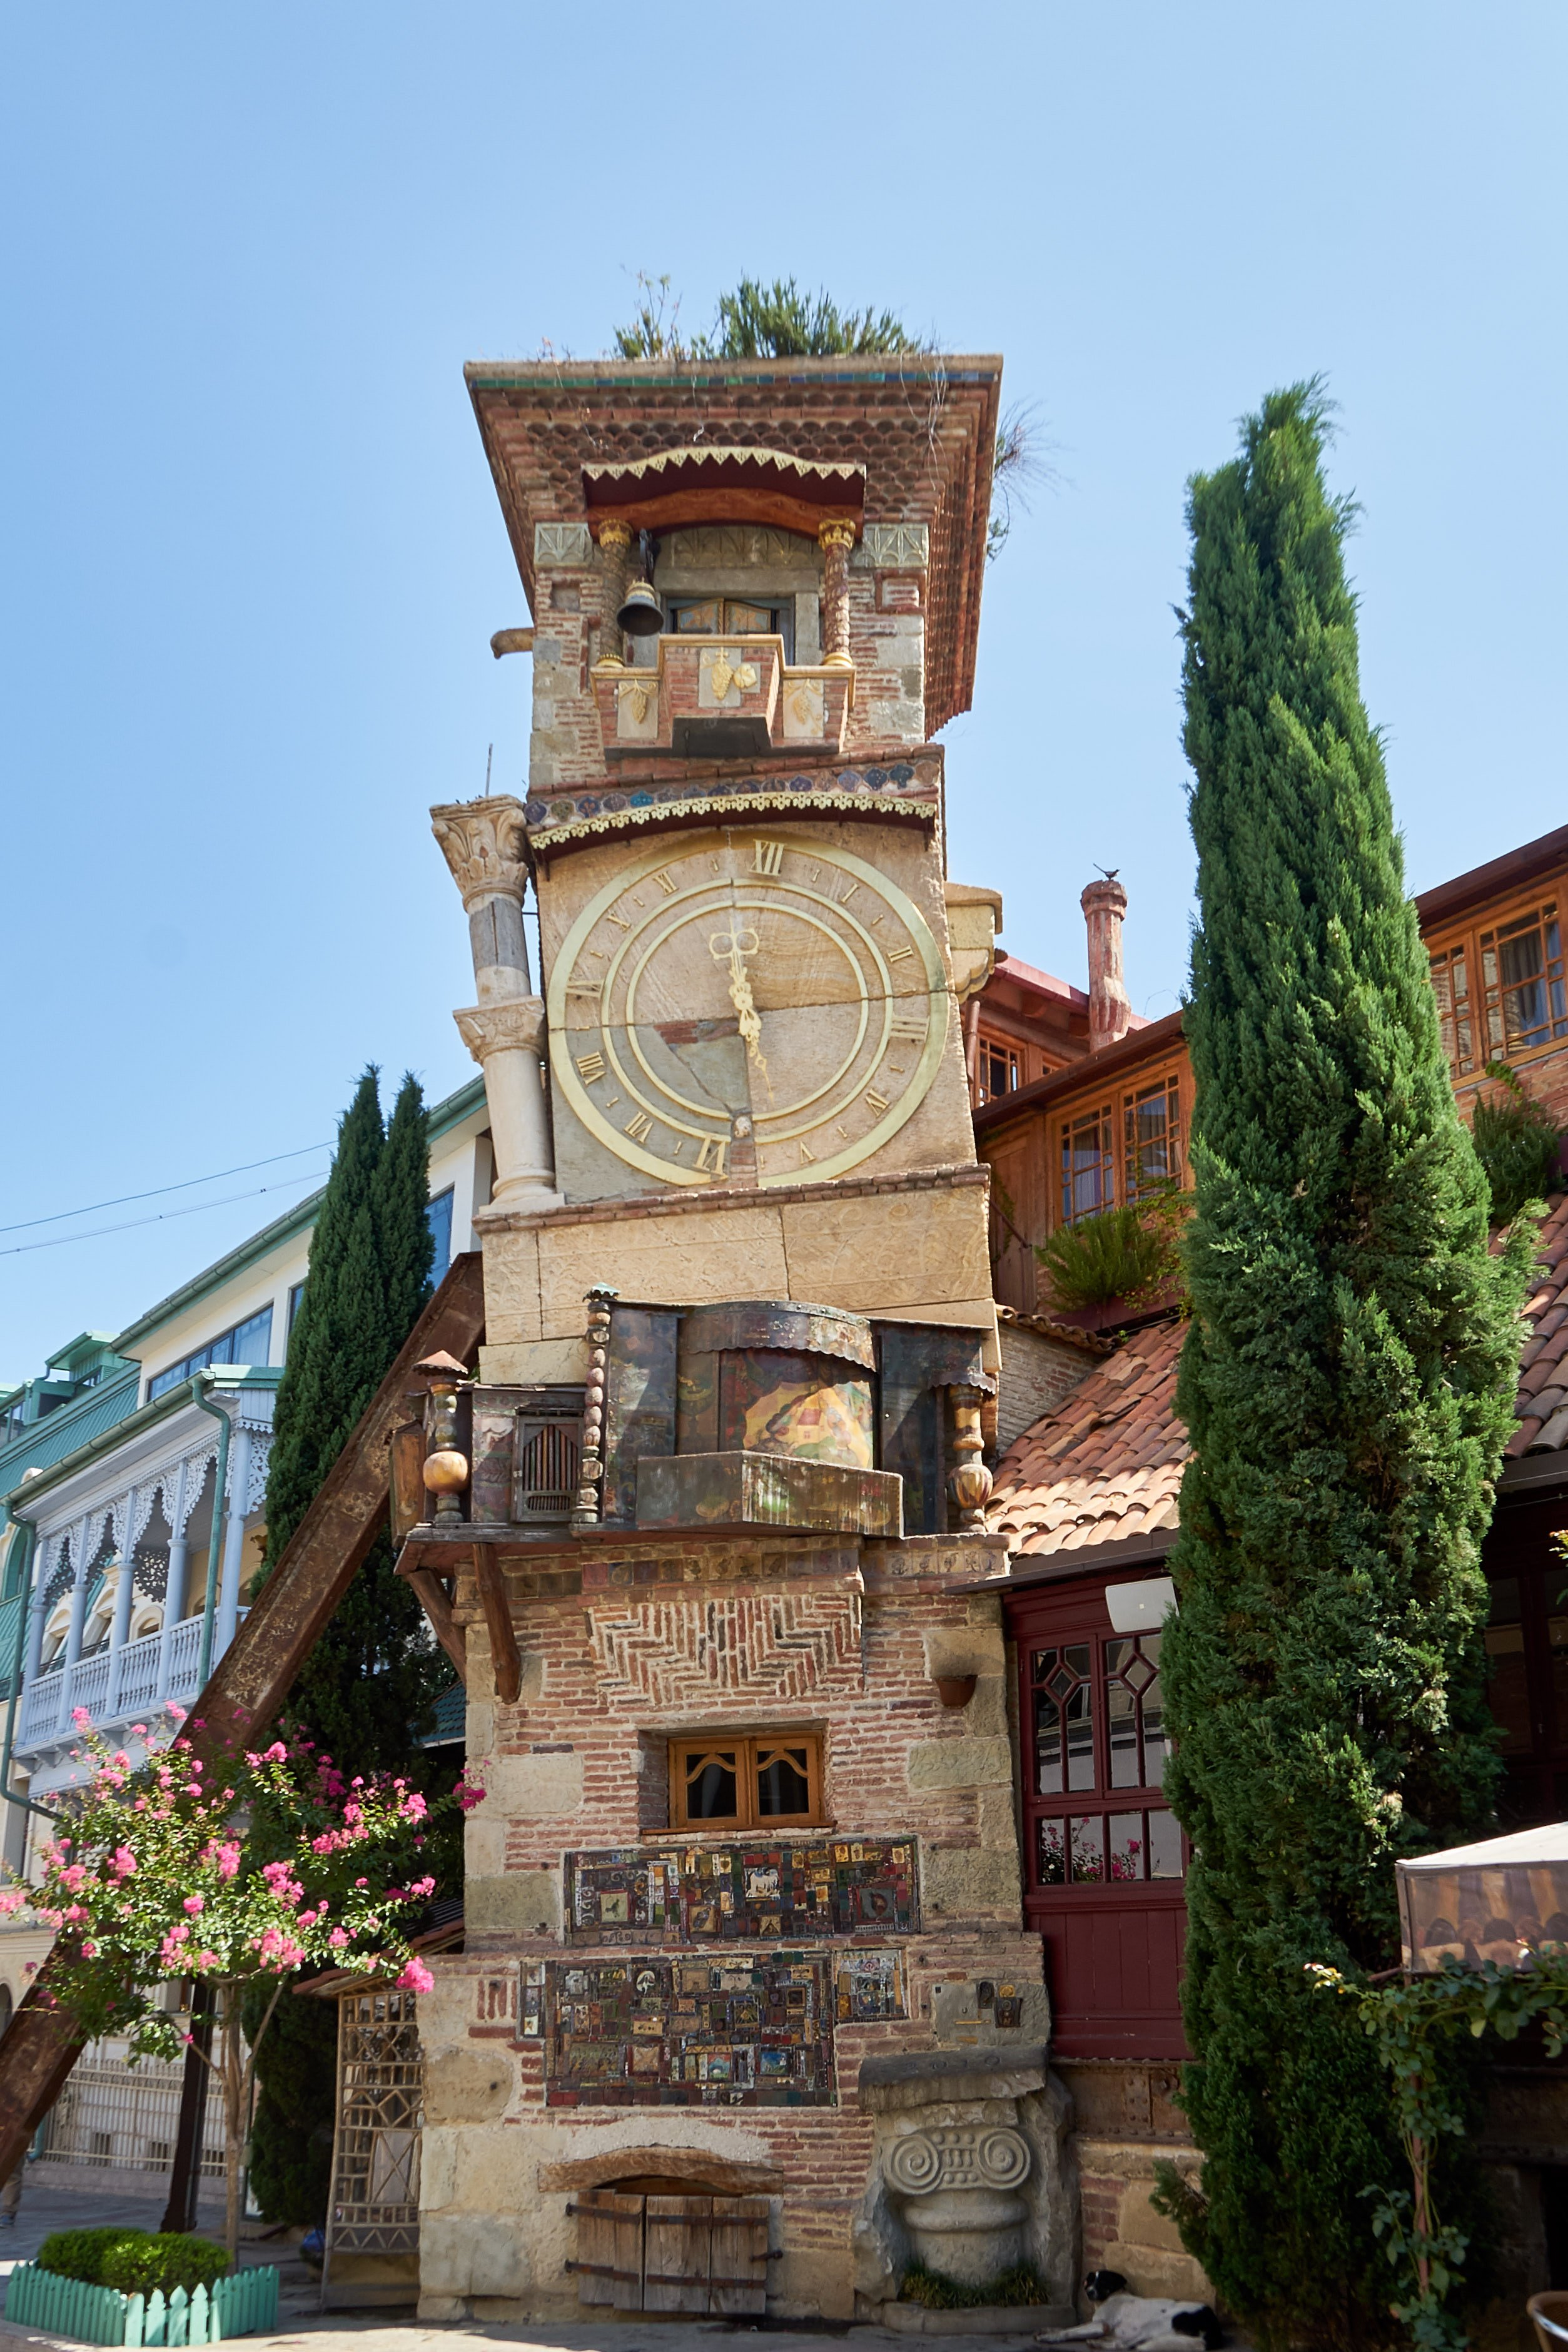 Turm des Marionenttentheaters in Tbilisi